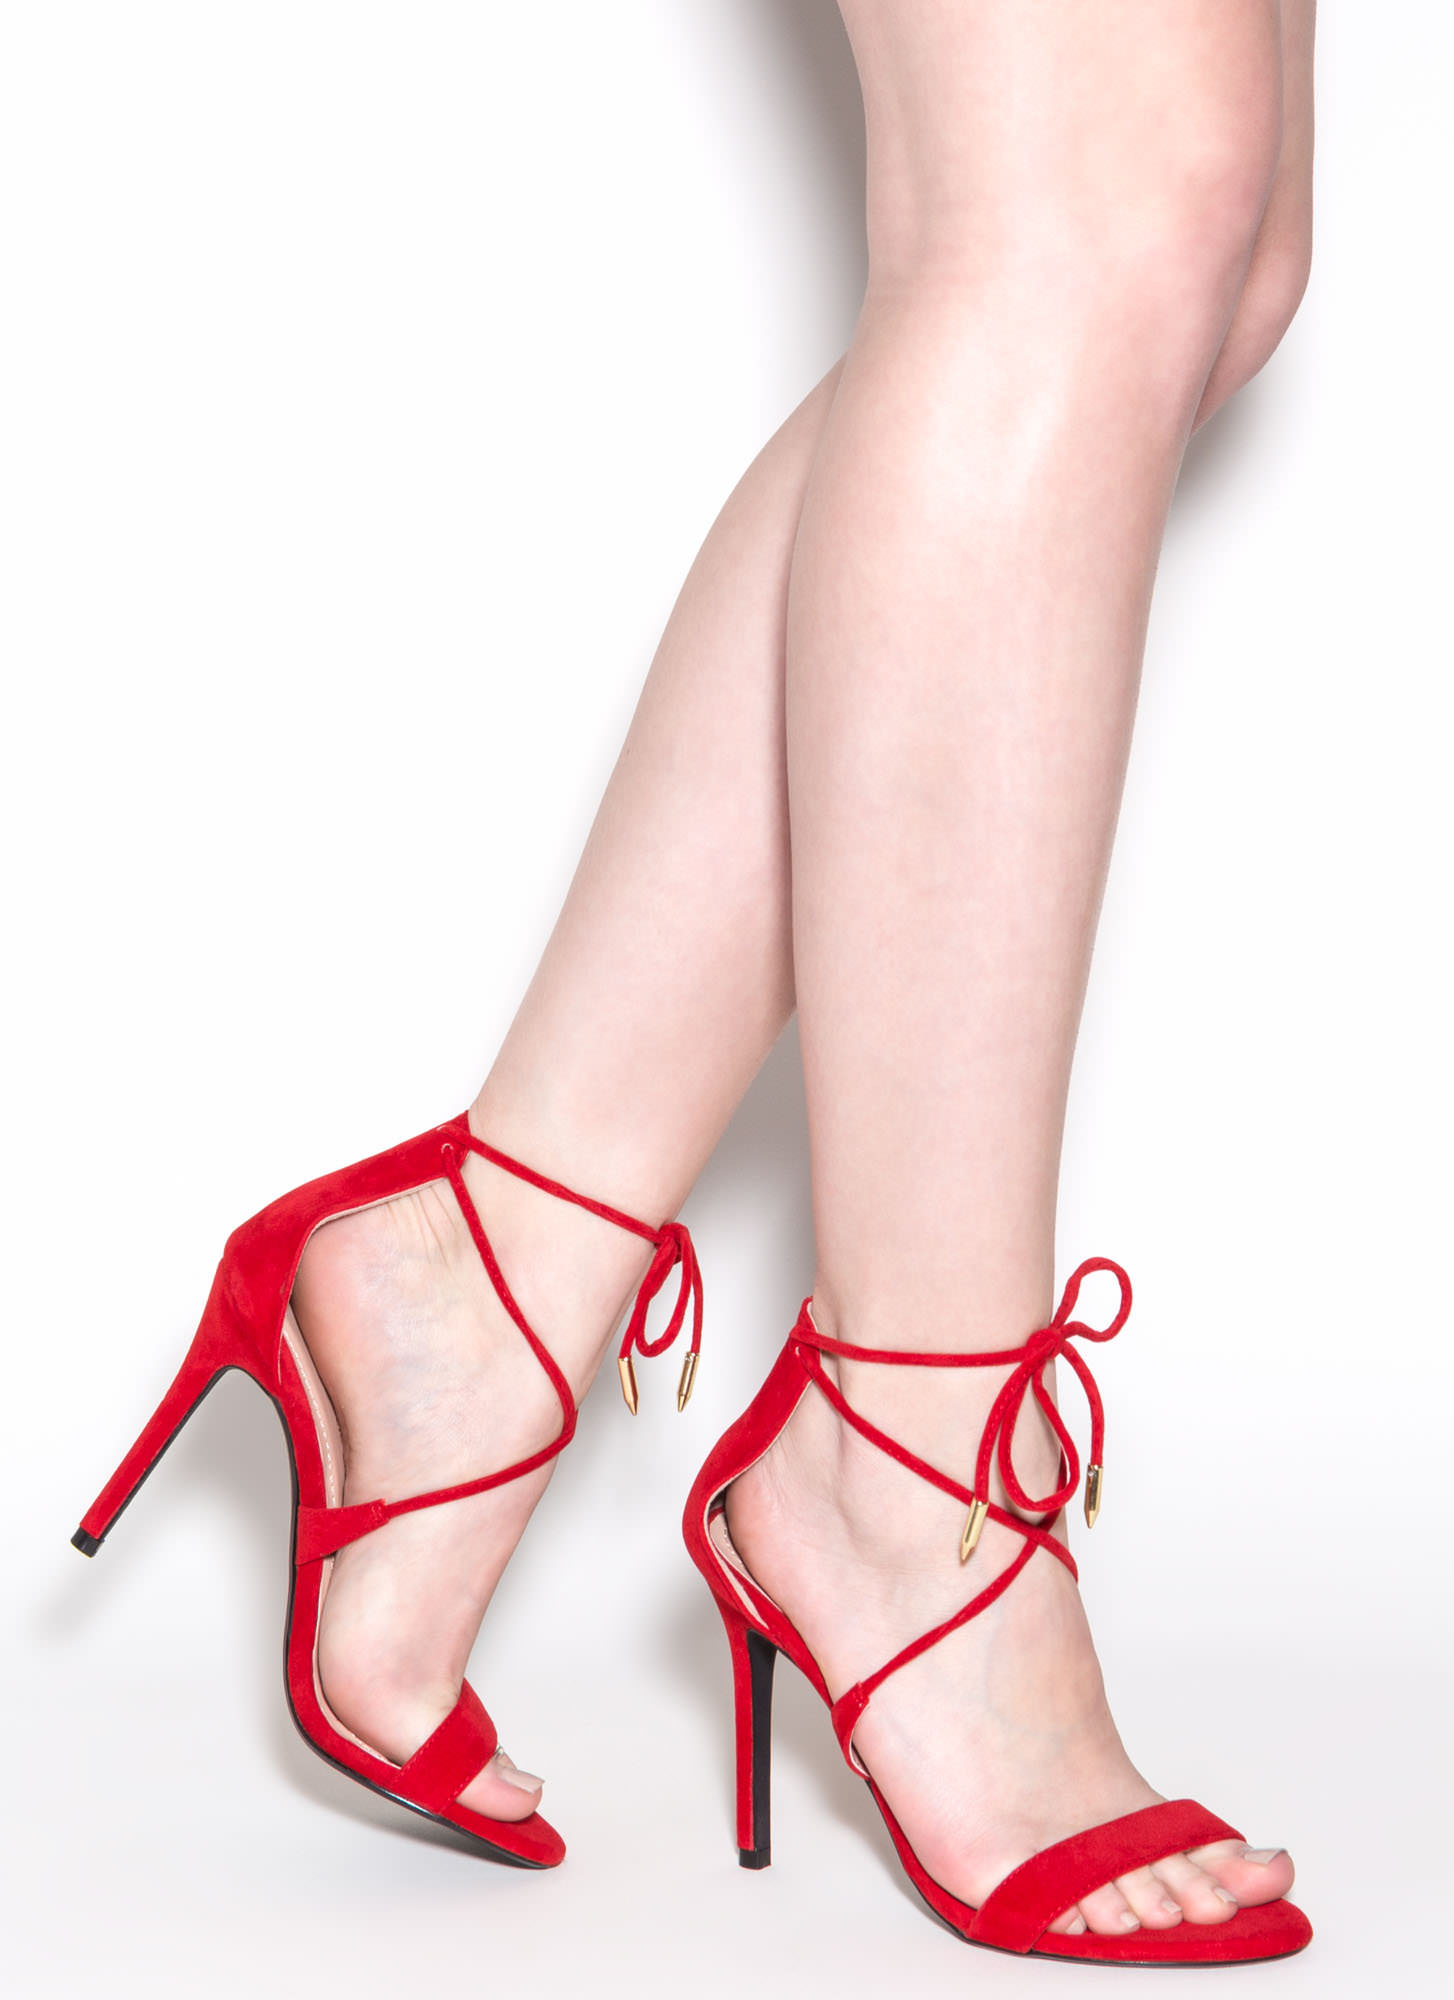 Red Heels - Ballet Flats, Pumps \u0026amp; More Red Shoes